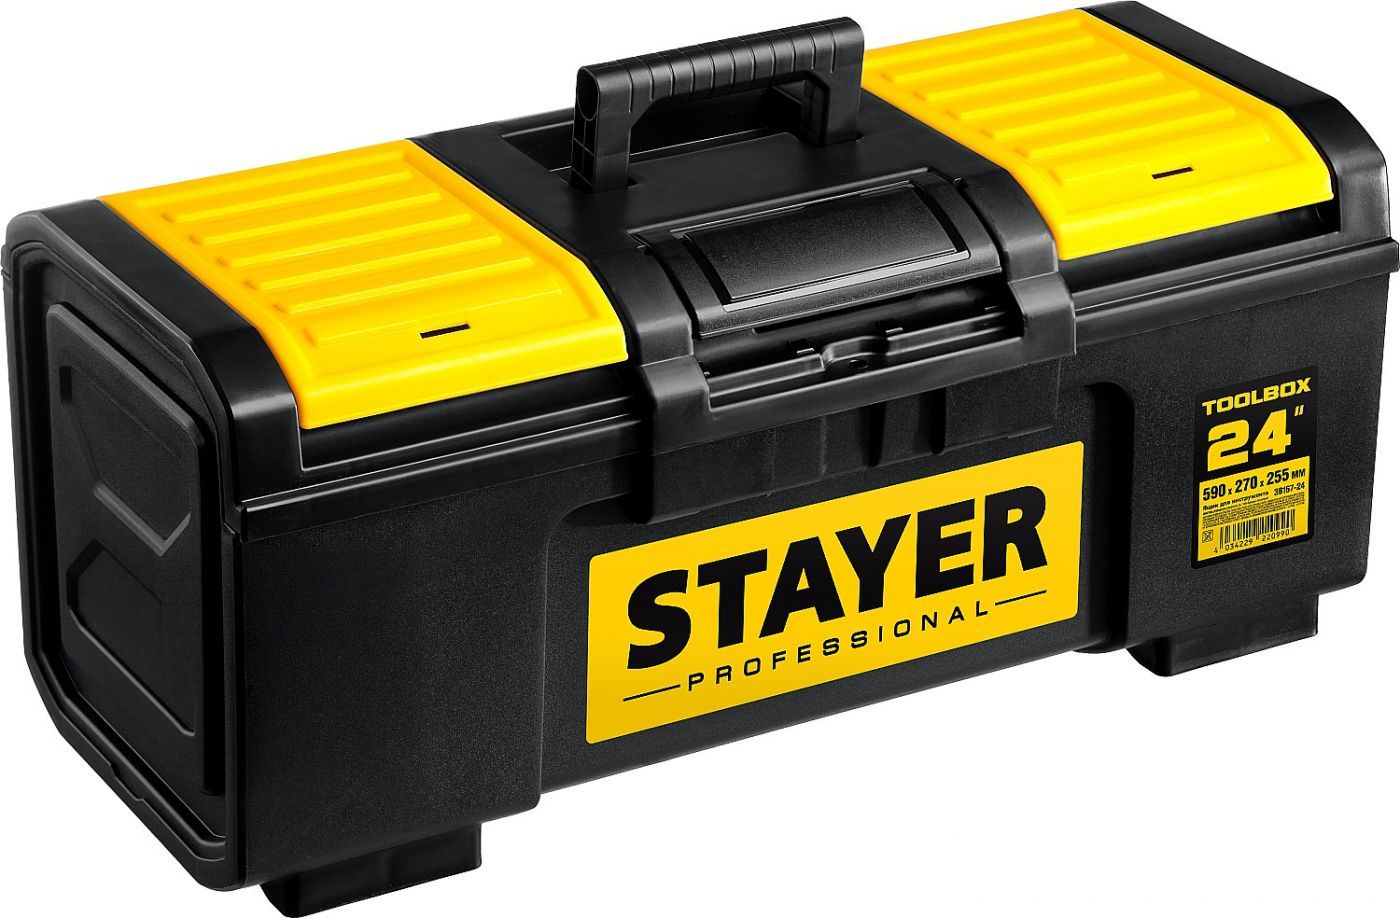 Ящик для инструмента TOOLBOX-24 пластиковый STAYER Professional